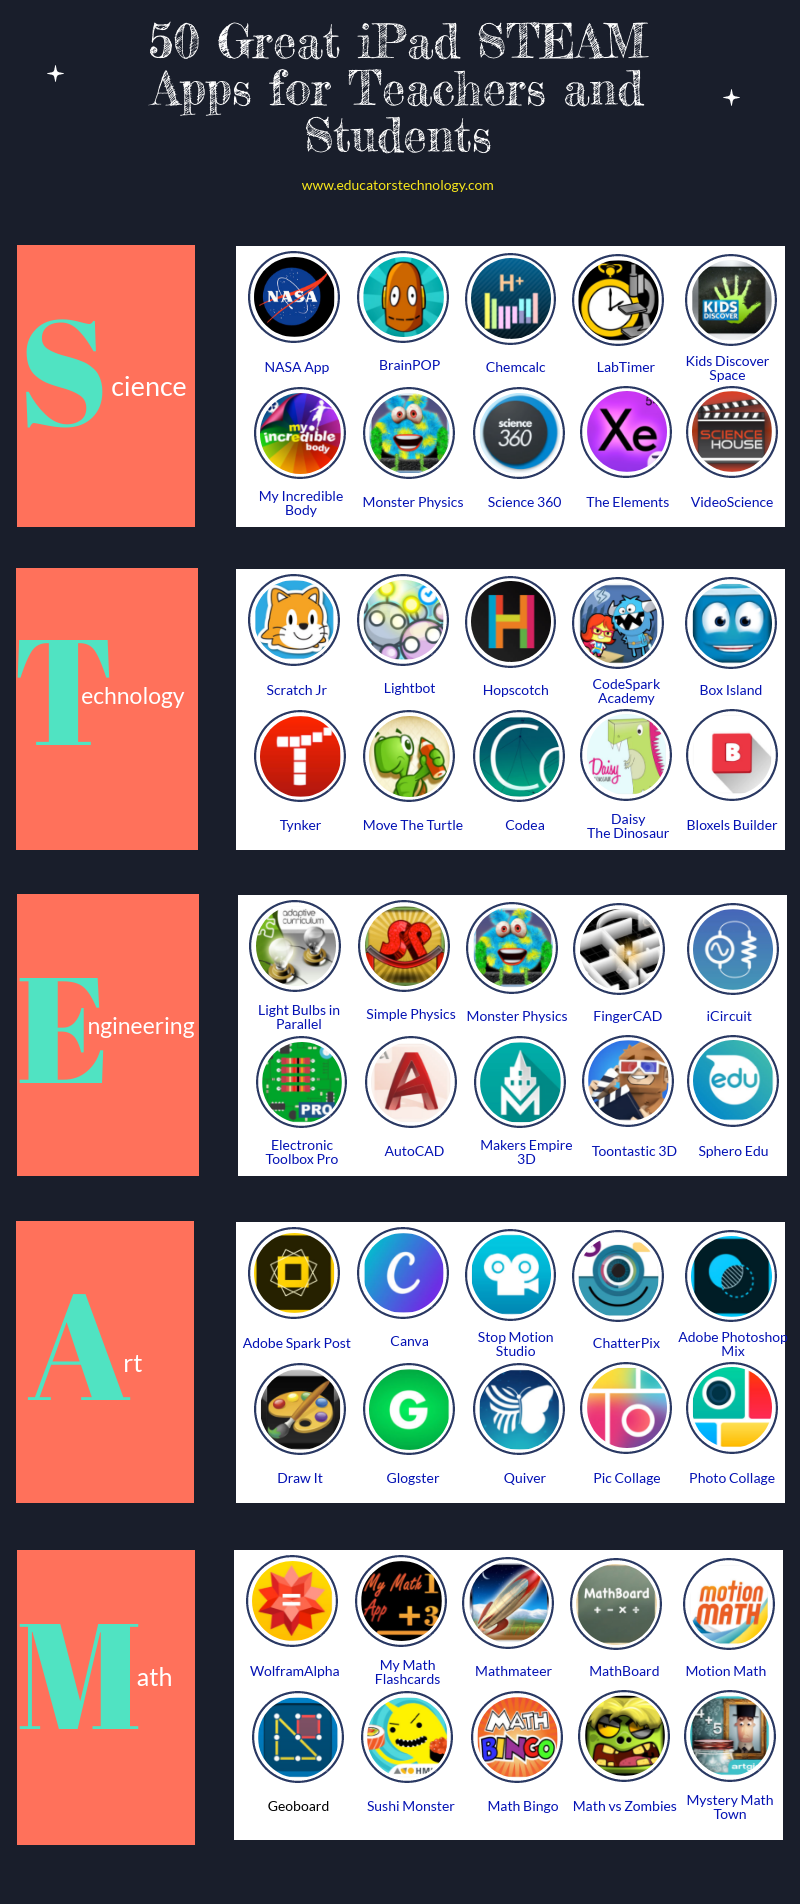 50 Great iPad STEAM Apps for Teachers and Students